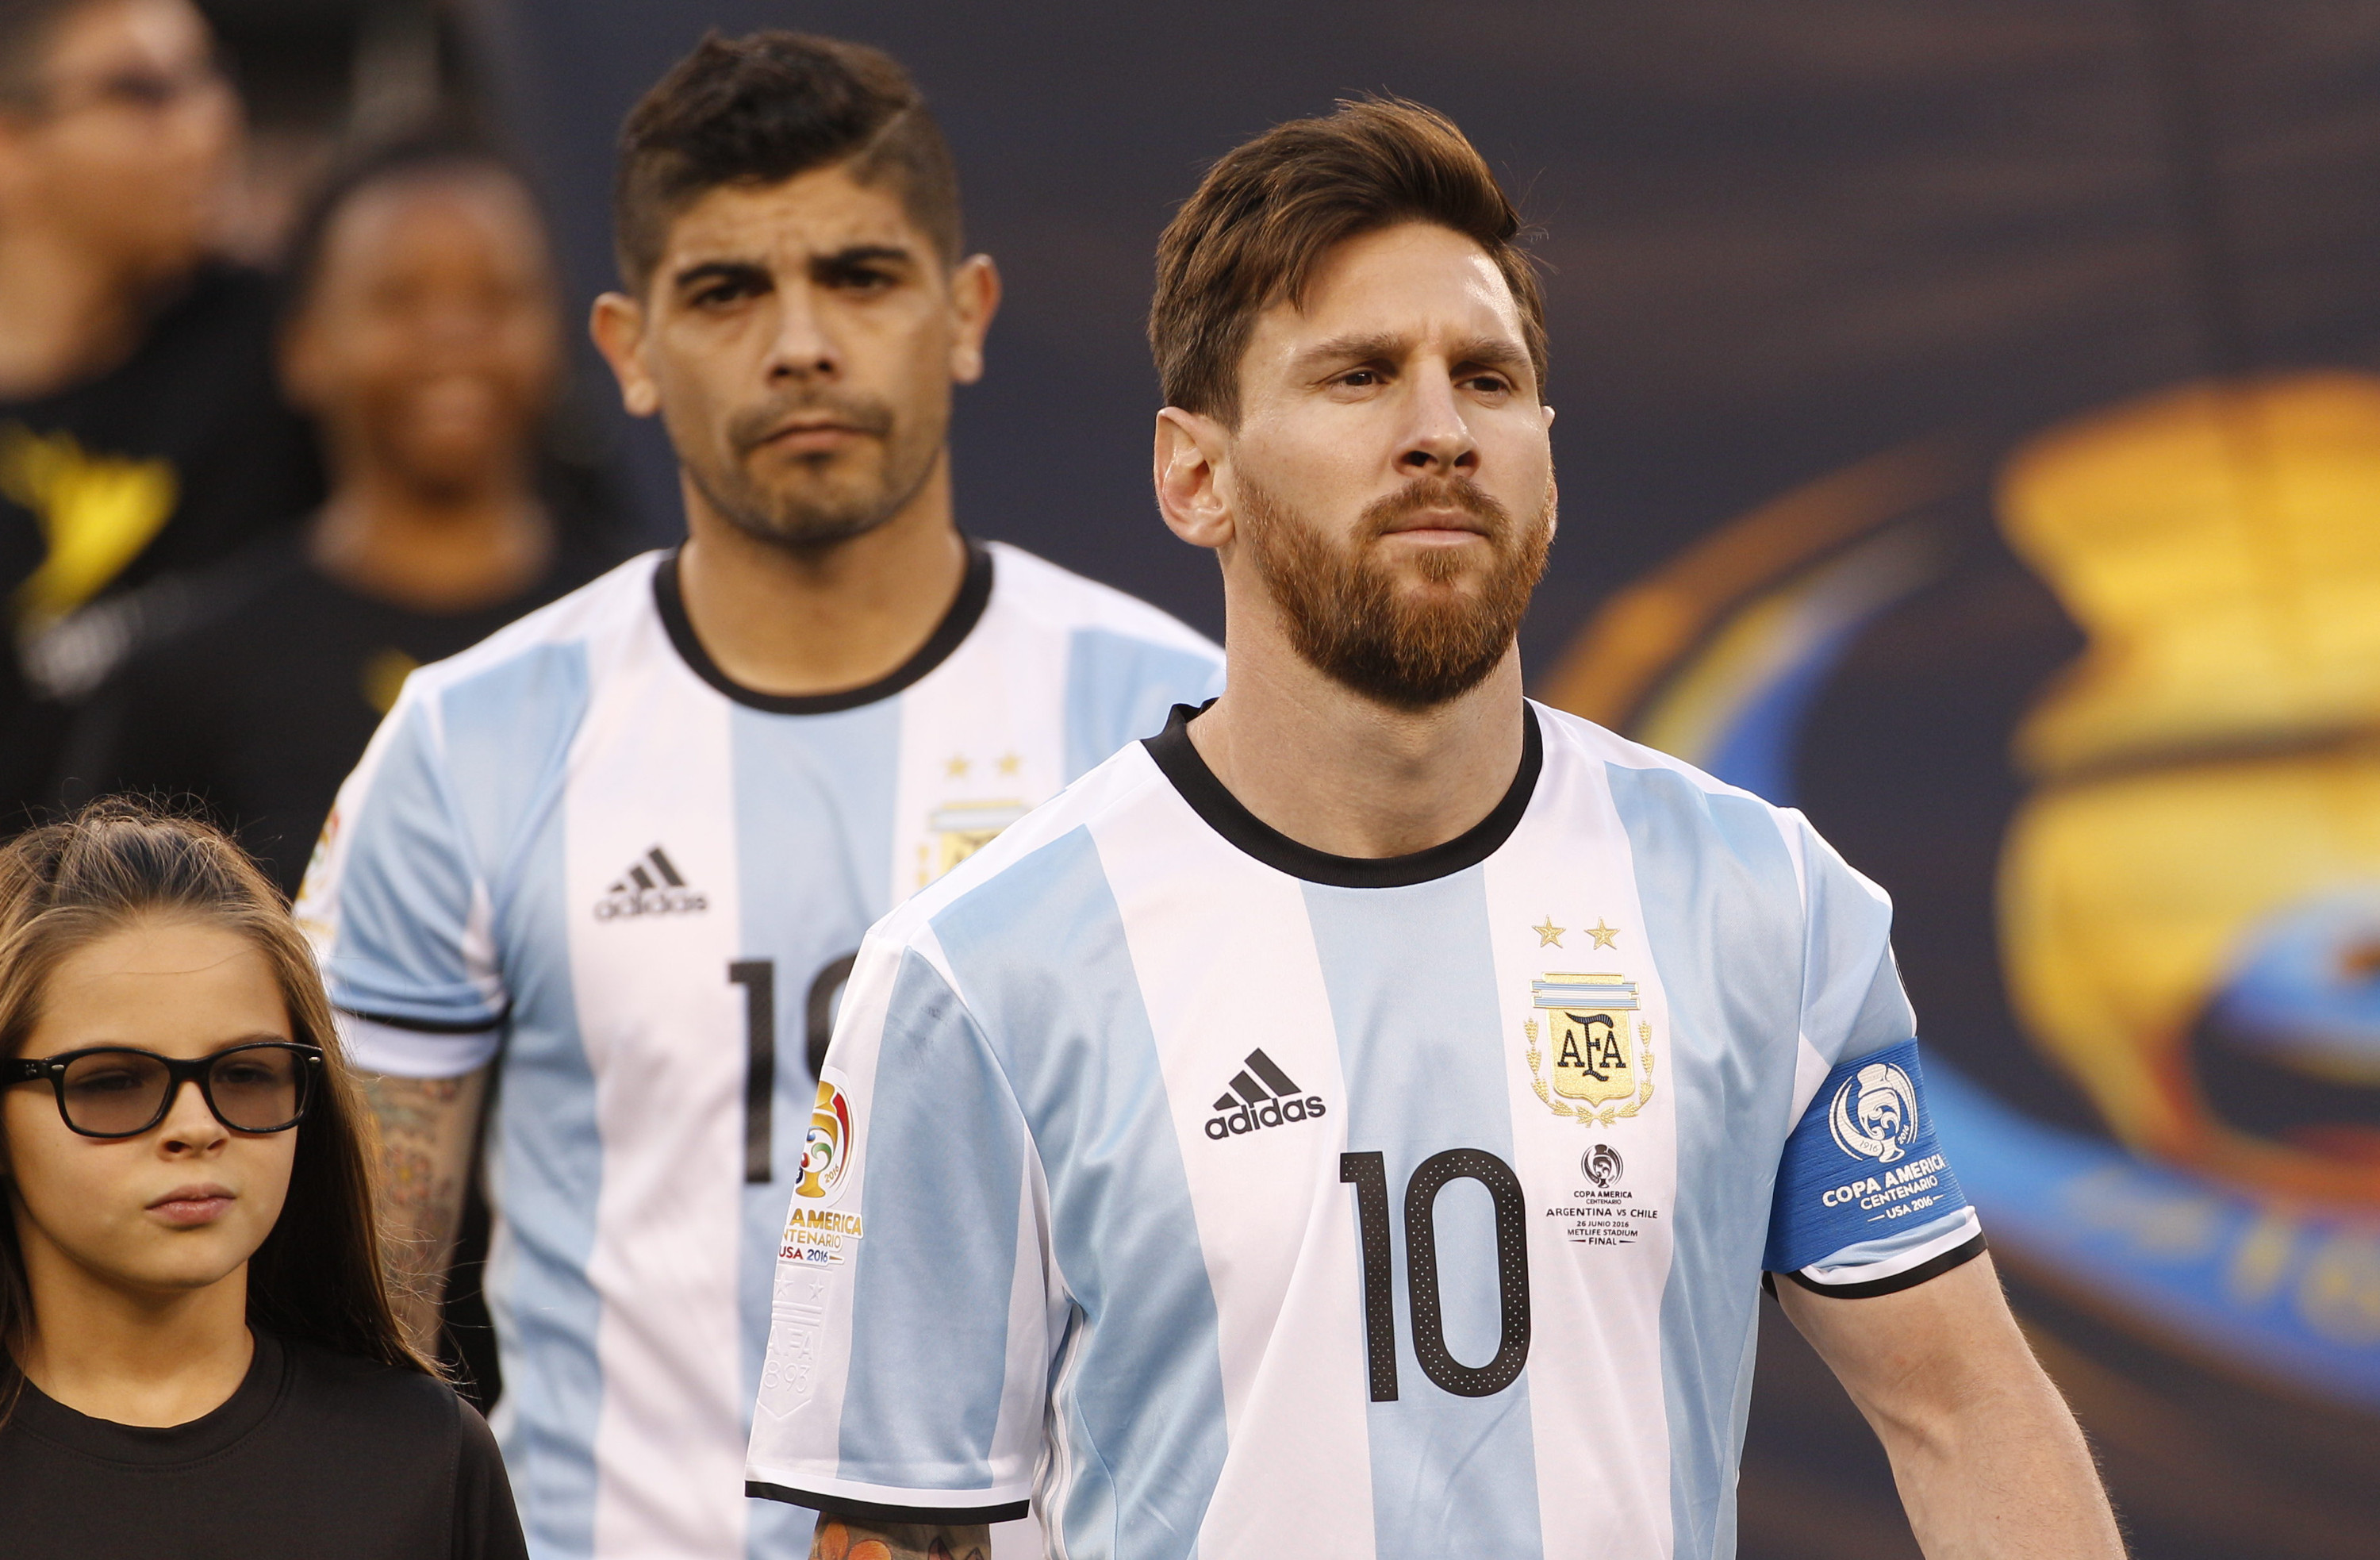 Diego Maradona calls on Lionel Messi to rethink retirement after Copa America heartbreak